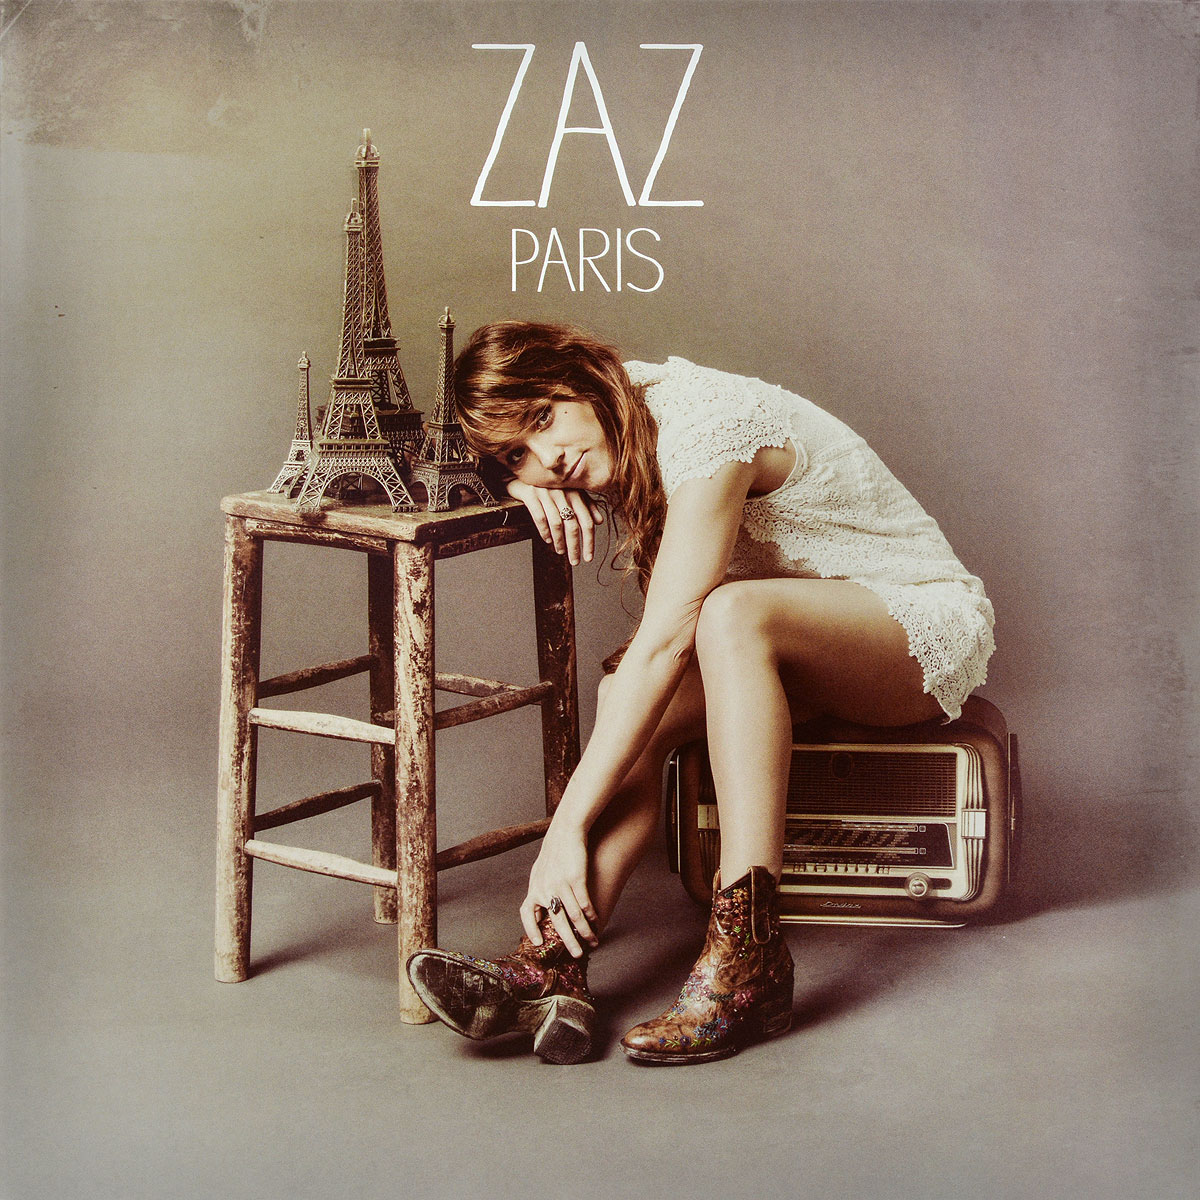 Zaz Zaz. Paris (2 LP) zaz zaz paris limited edition cd dvd